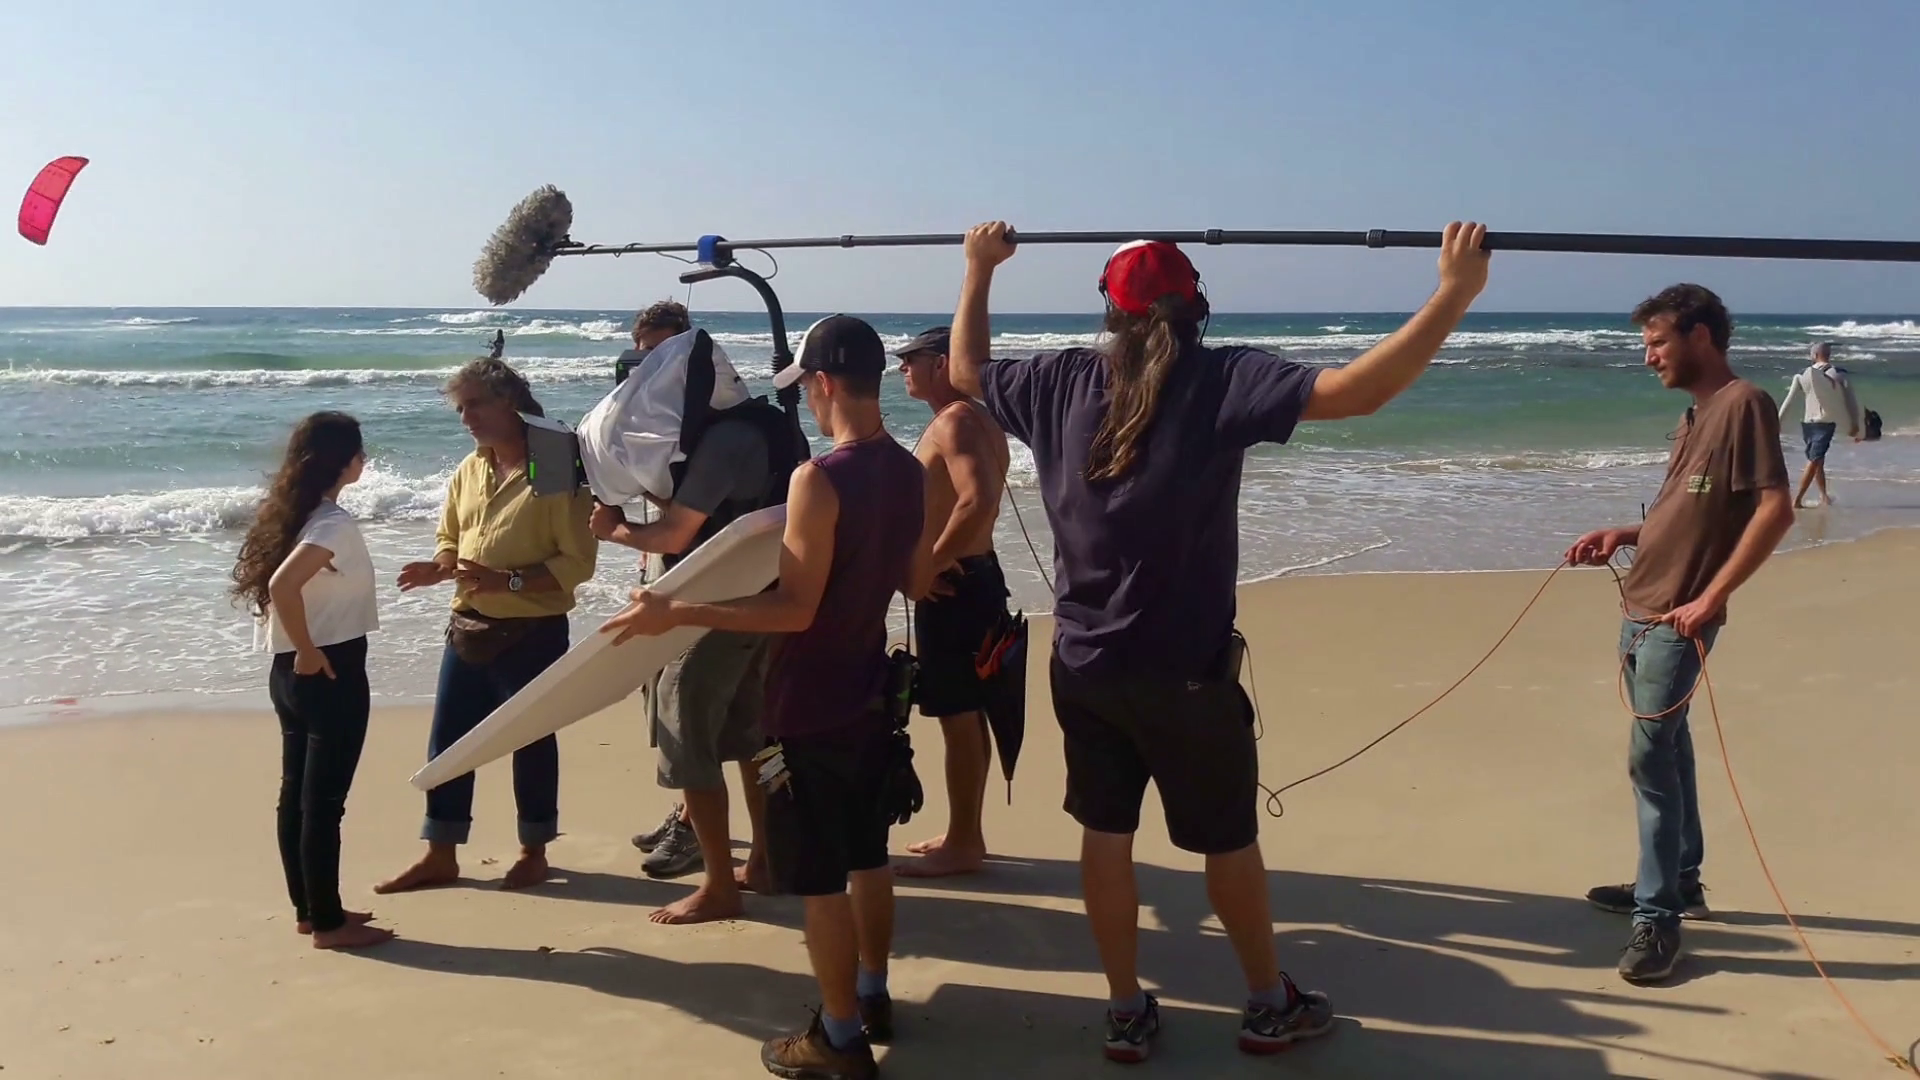 tel-aviv-israel-october-26-2016-large-film-crew-on-the-set-of-the-movie-on-the-beach_hyizduayl_thumbnail-full01.png